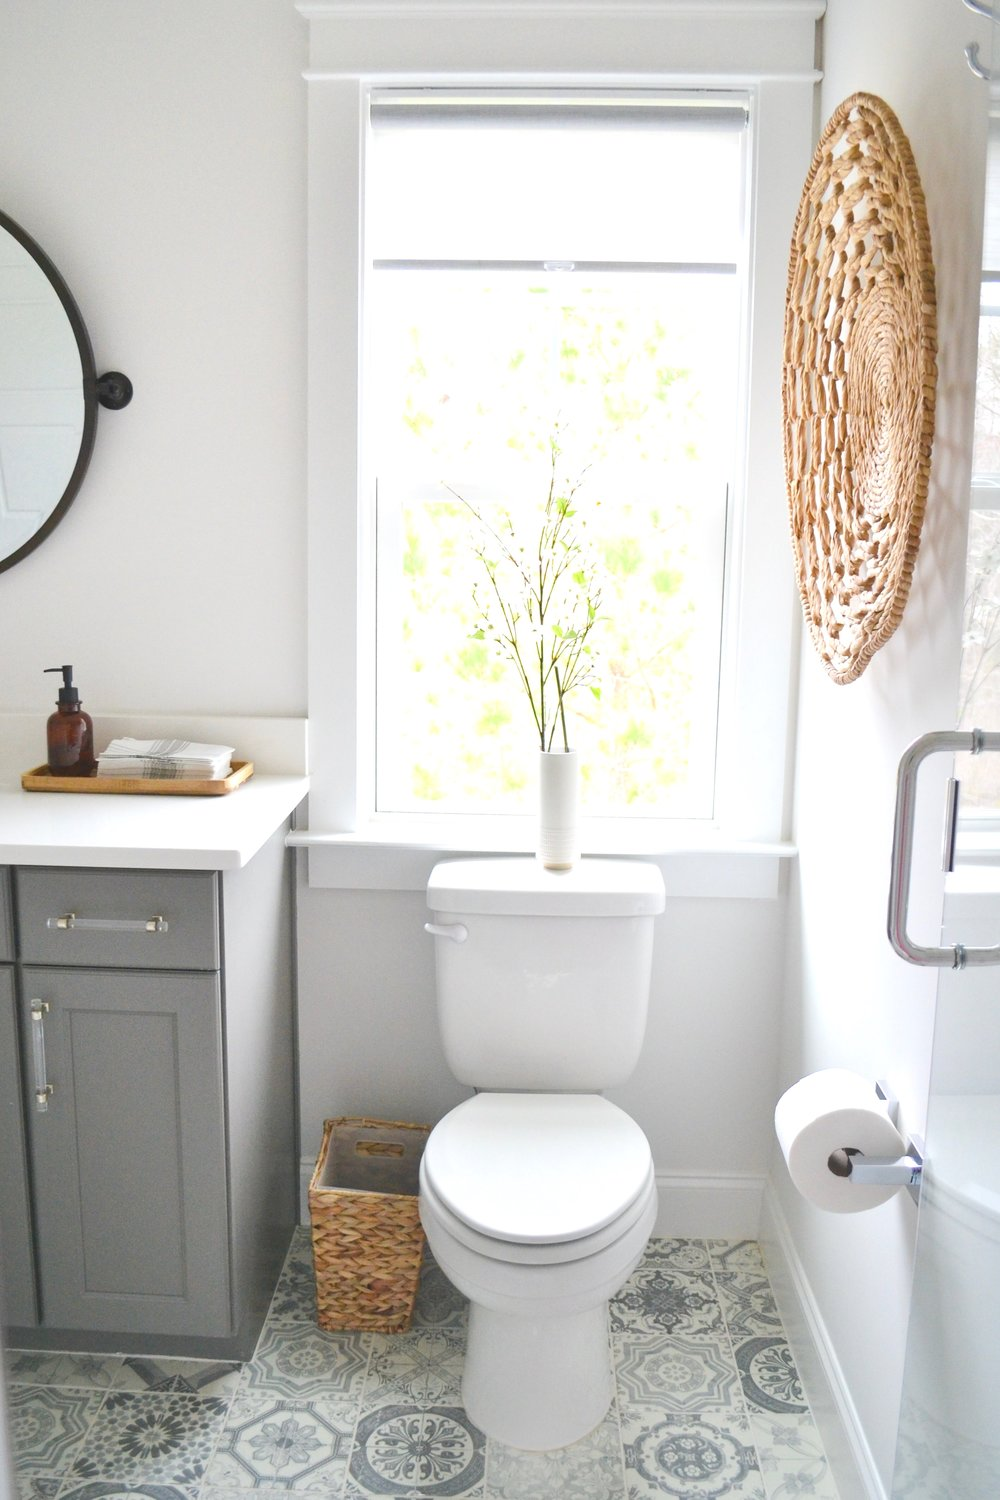 Bathroom Patterned Tile and Mixed Metals